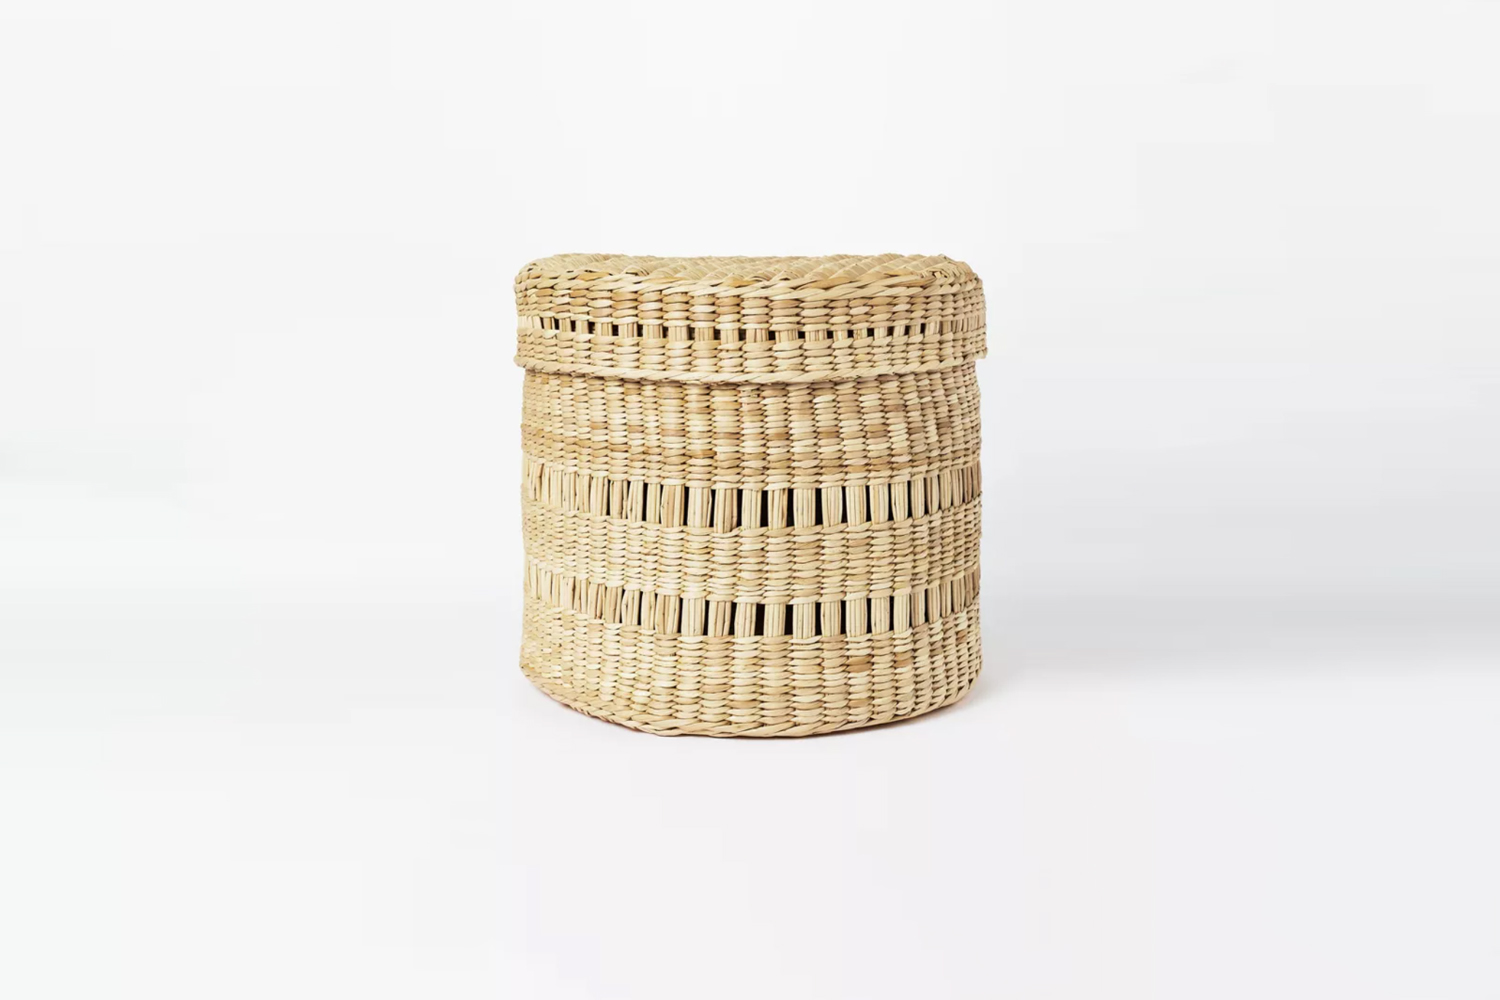 the threshold oval lidded basket is designed with studio mcgee for target for \ 22